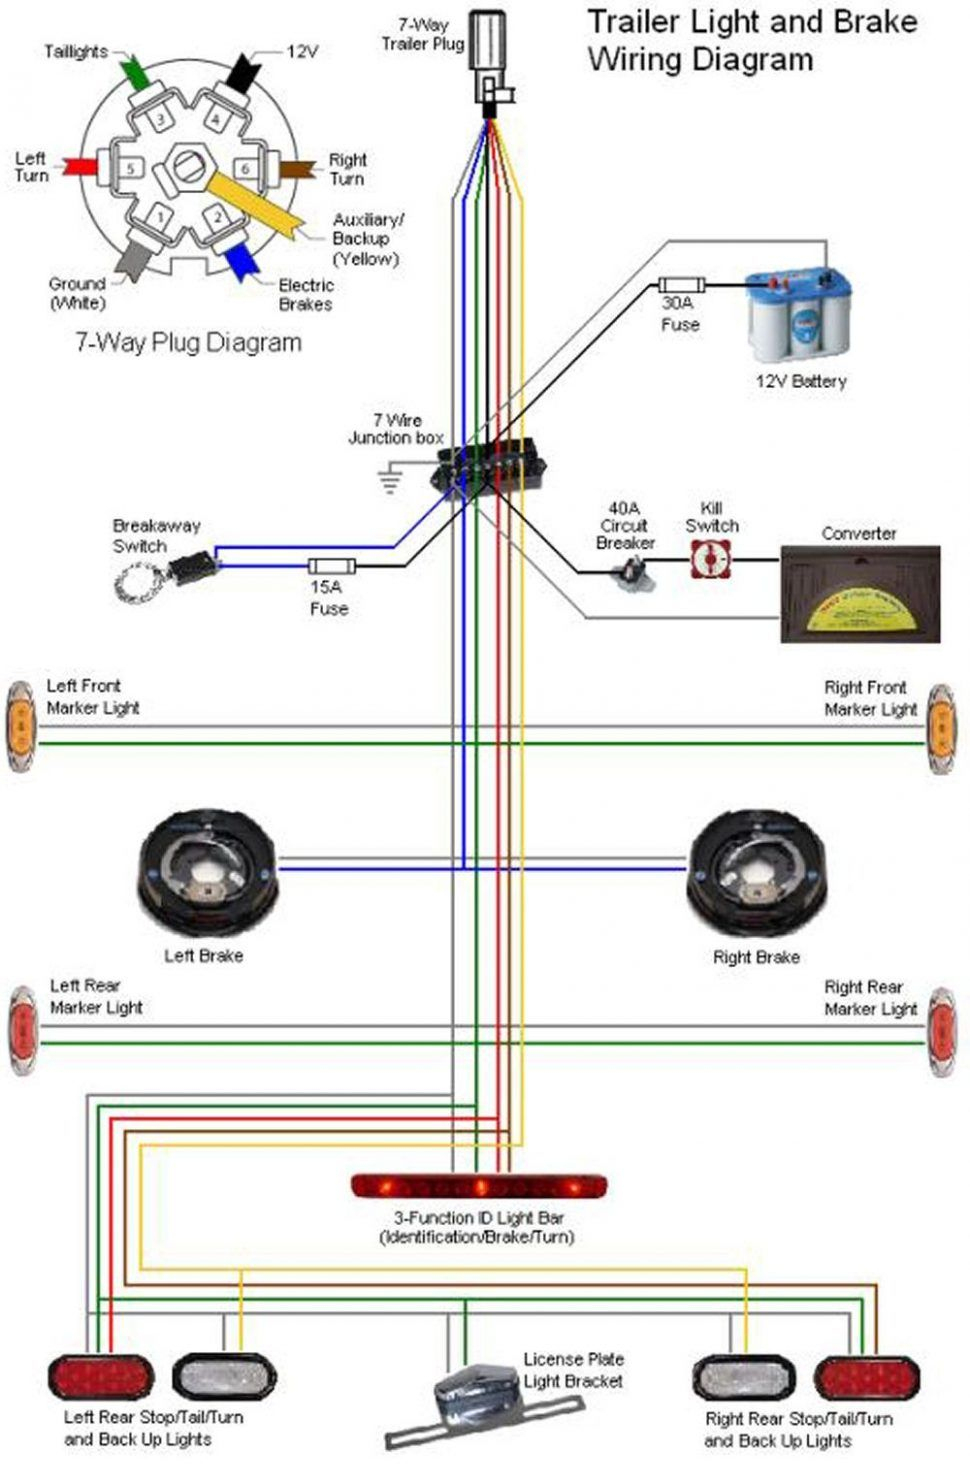 Seven Pin Trailer Wiring Diagram | Wiring Diagrams Gallery - Trailer Seven Pin Wiring Diagram